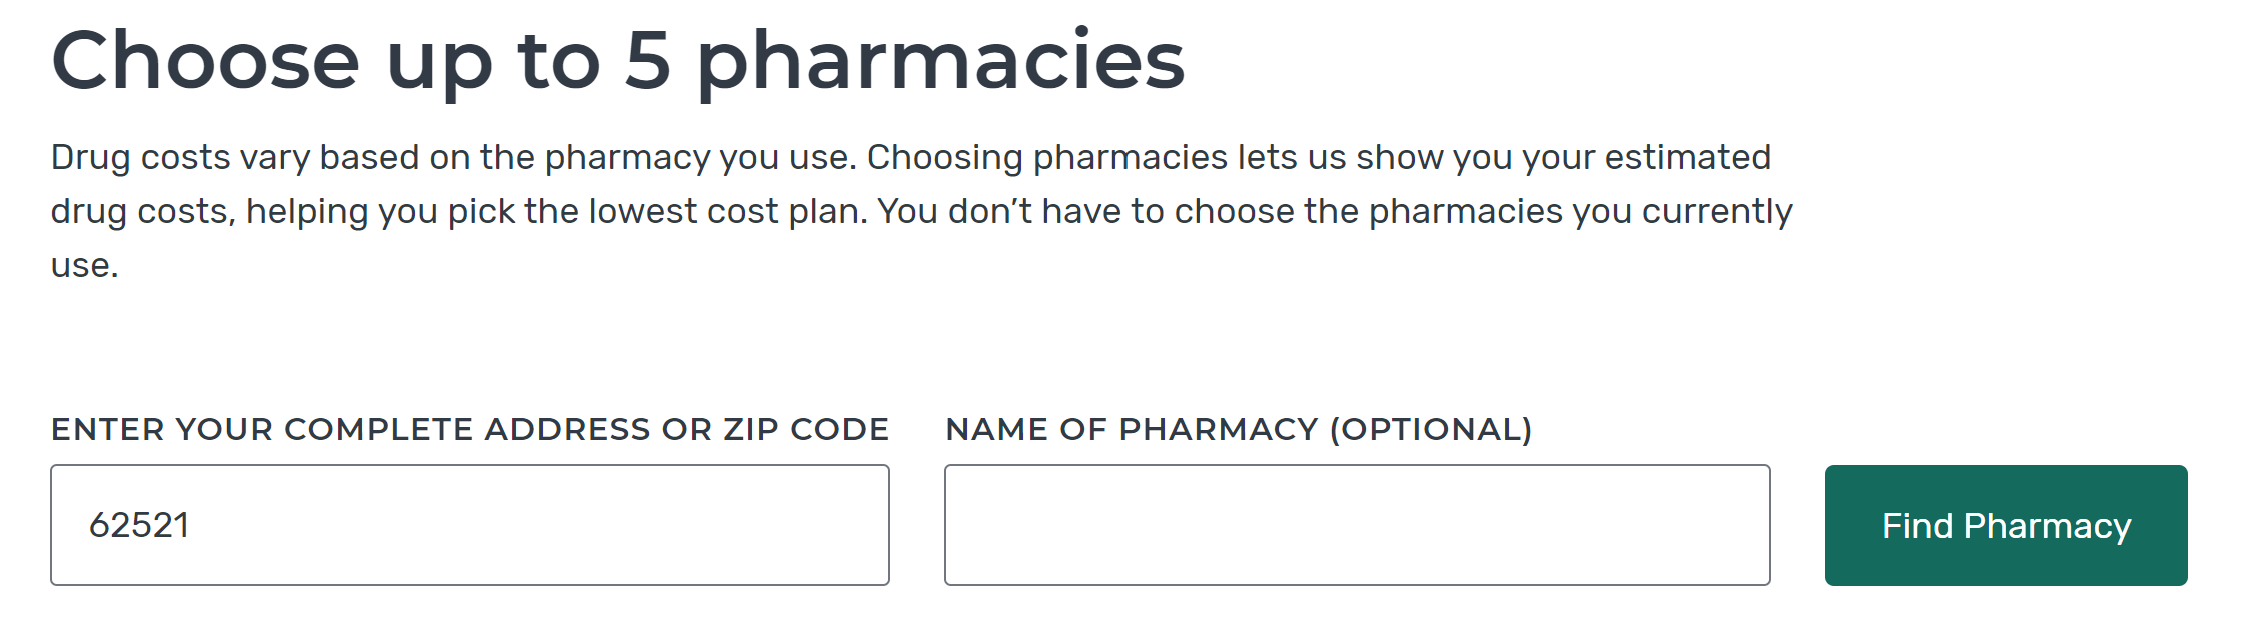 new-pharmacy-search-options